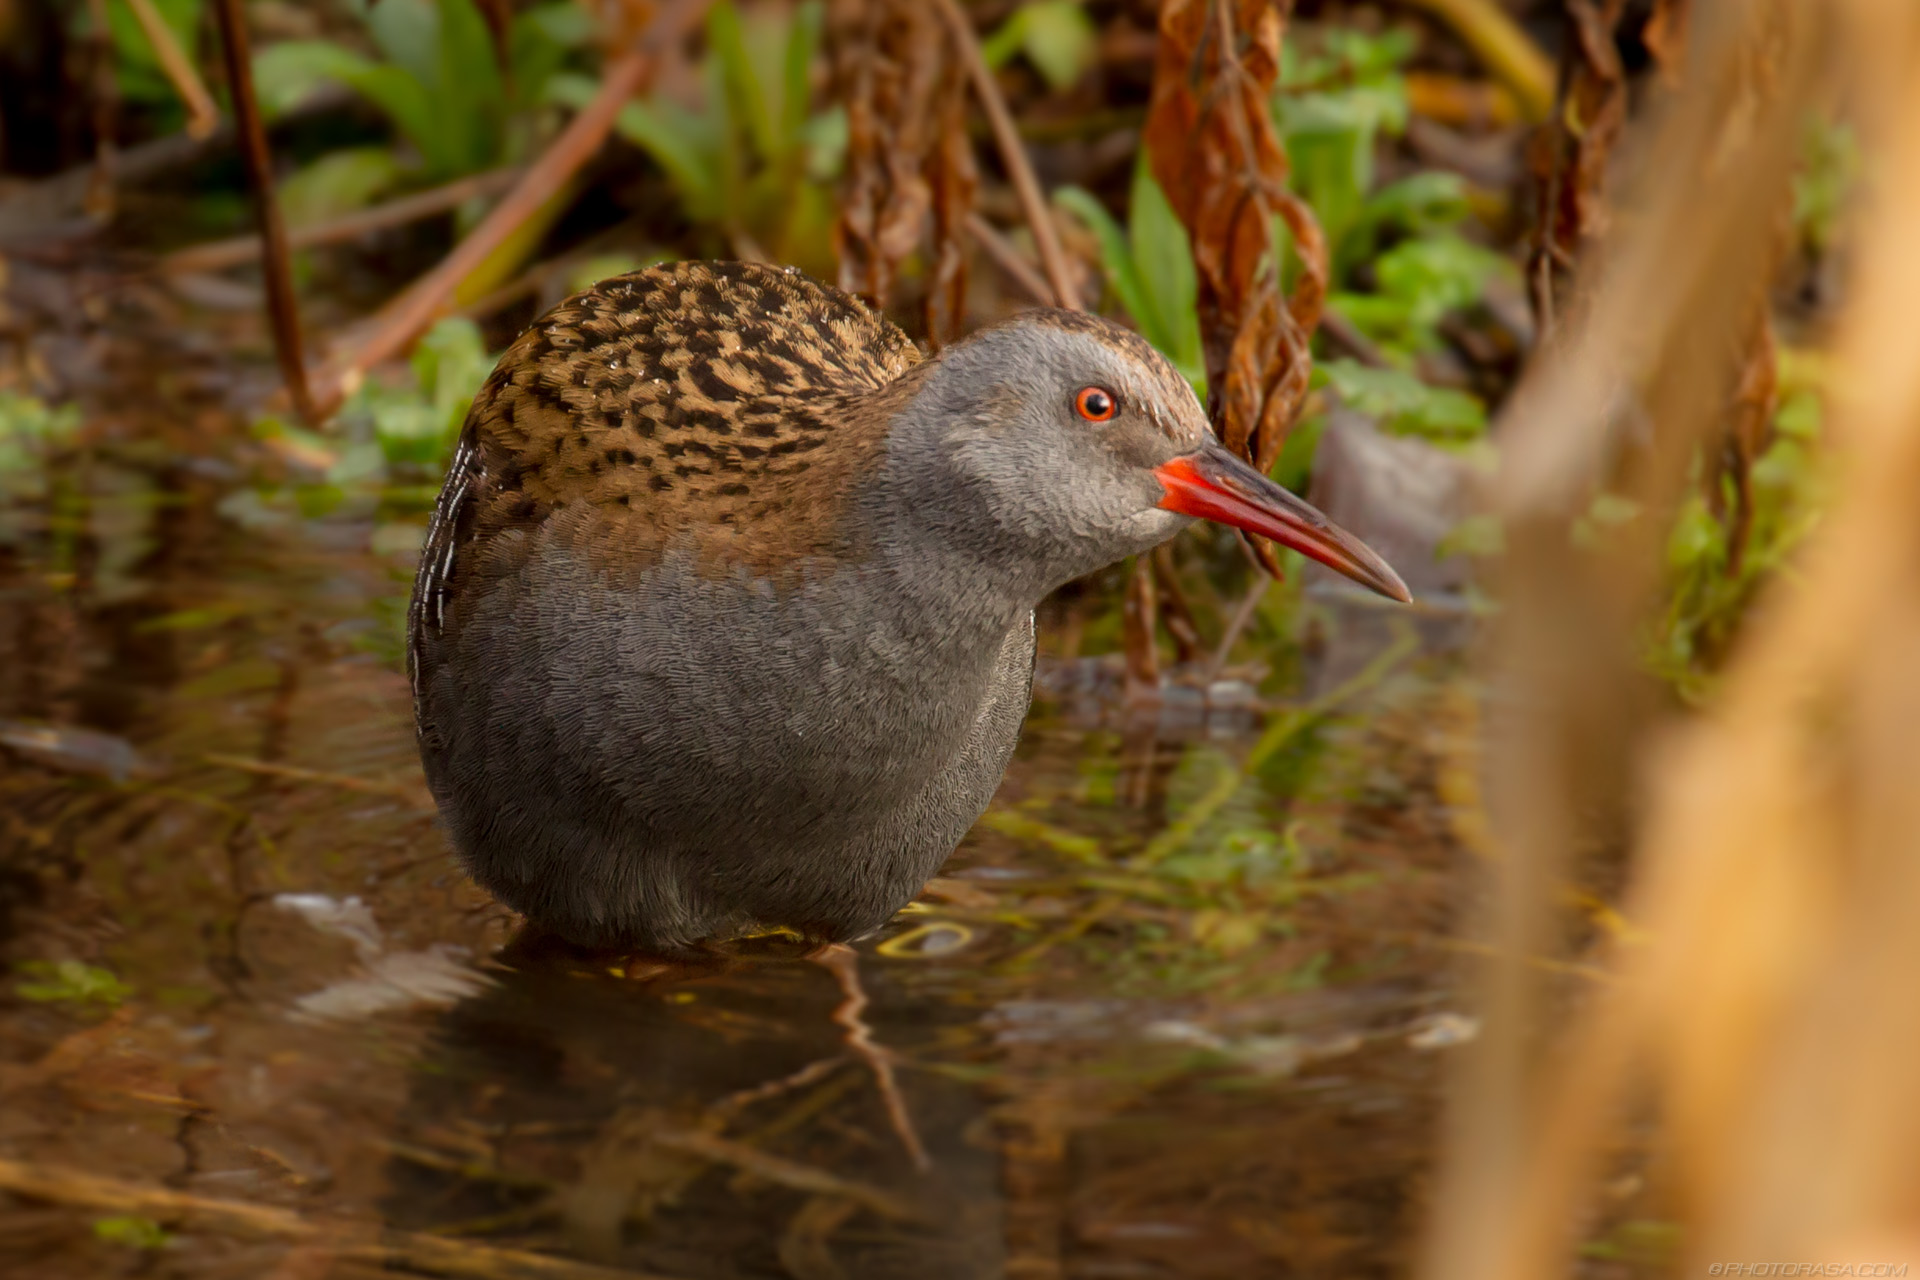 http://photorasa.com/water-rail-by-the-stream/water-rail-crouching/